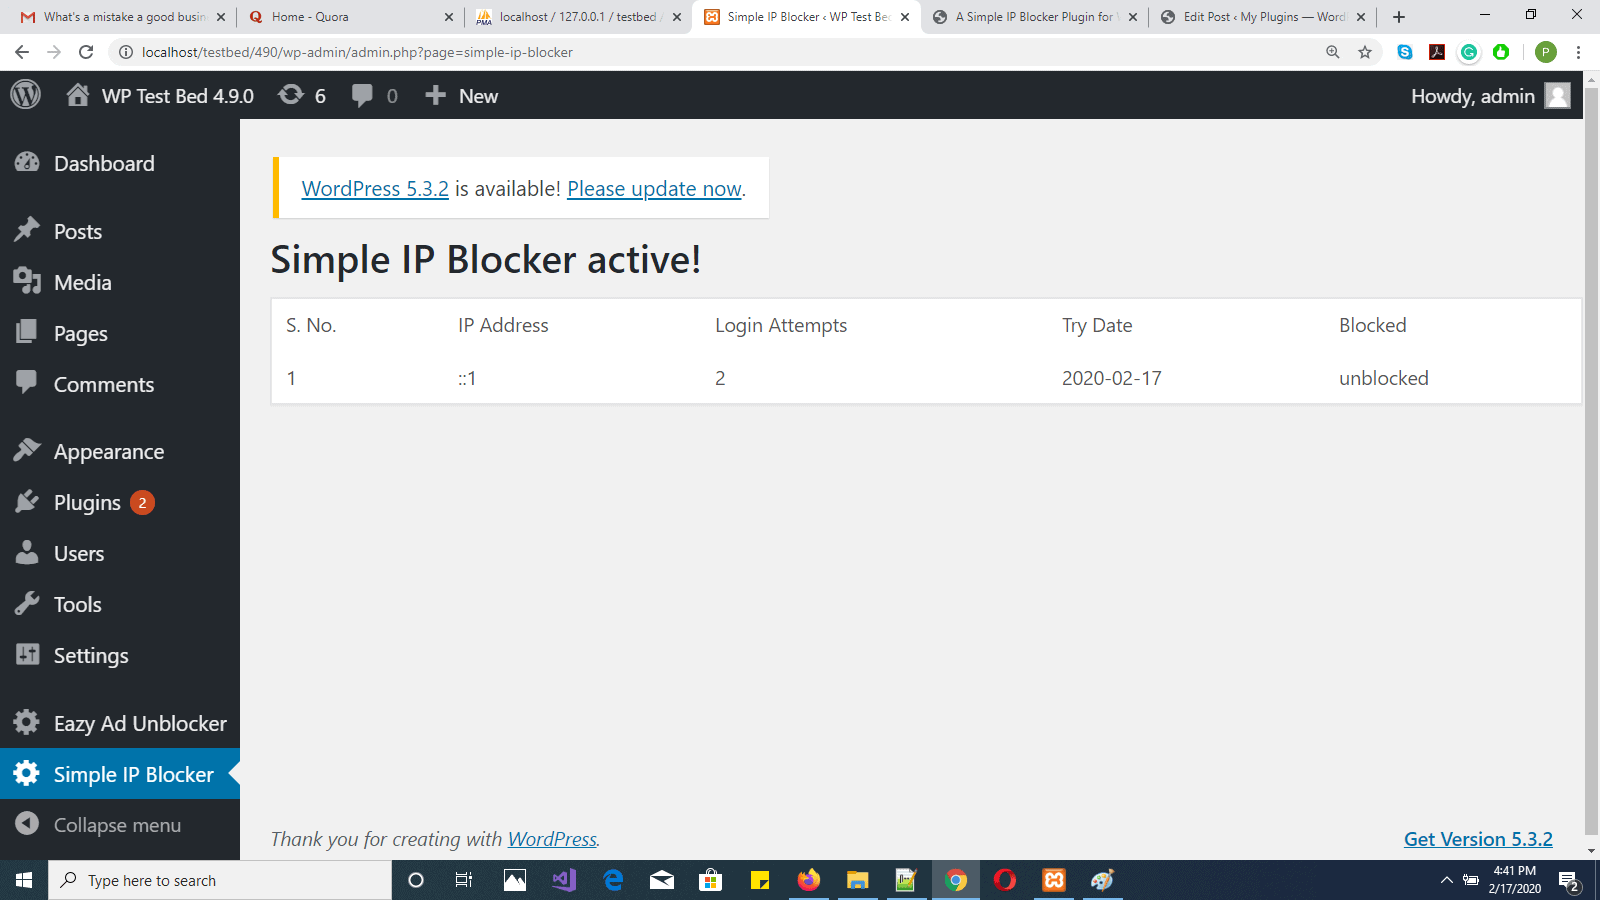 A Simple IP Blocker Plugin for WordPress